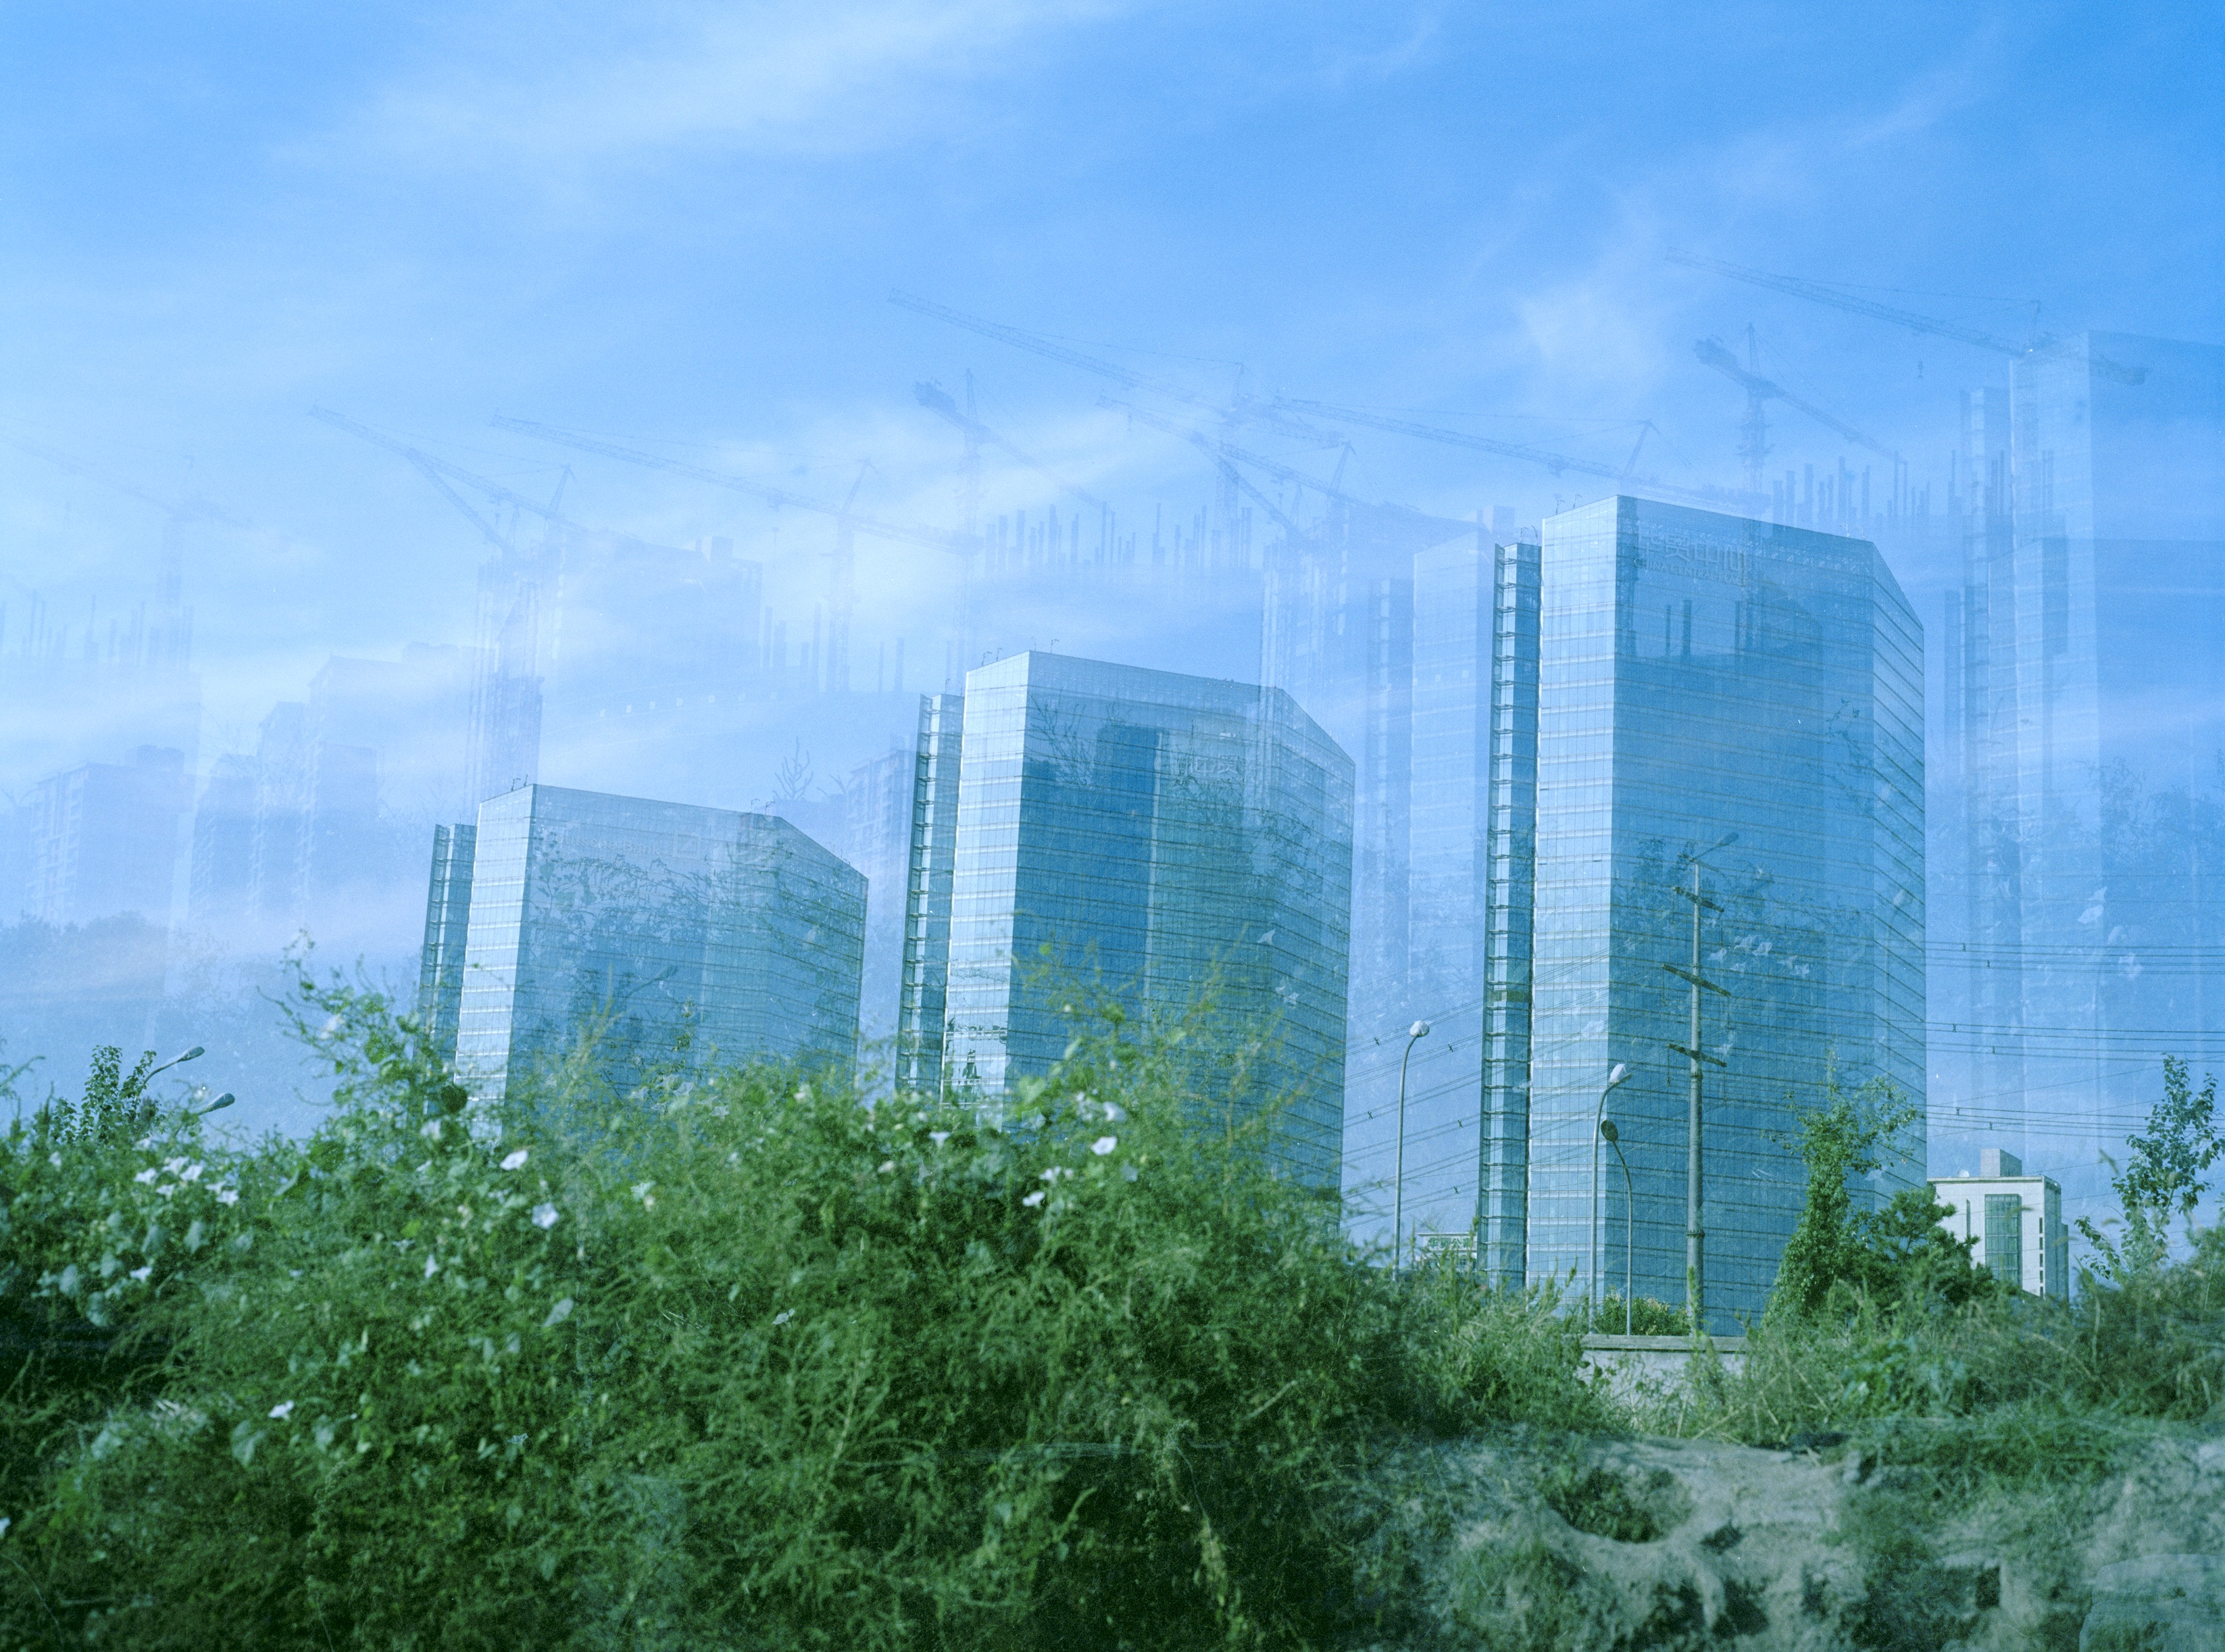 Three identical glass buildings look hazy behind a large bush. Powerlines can be seen very faintly.